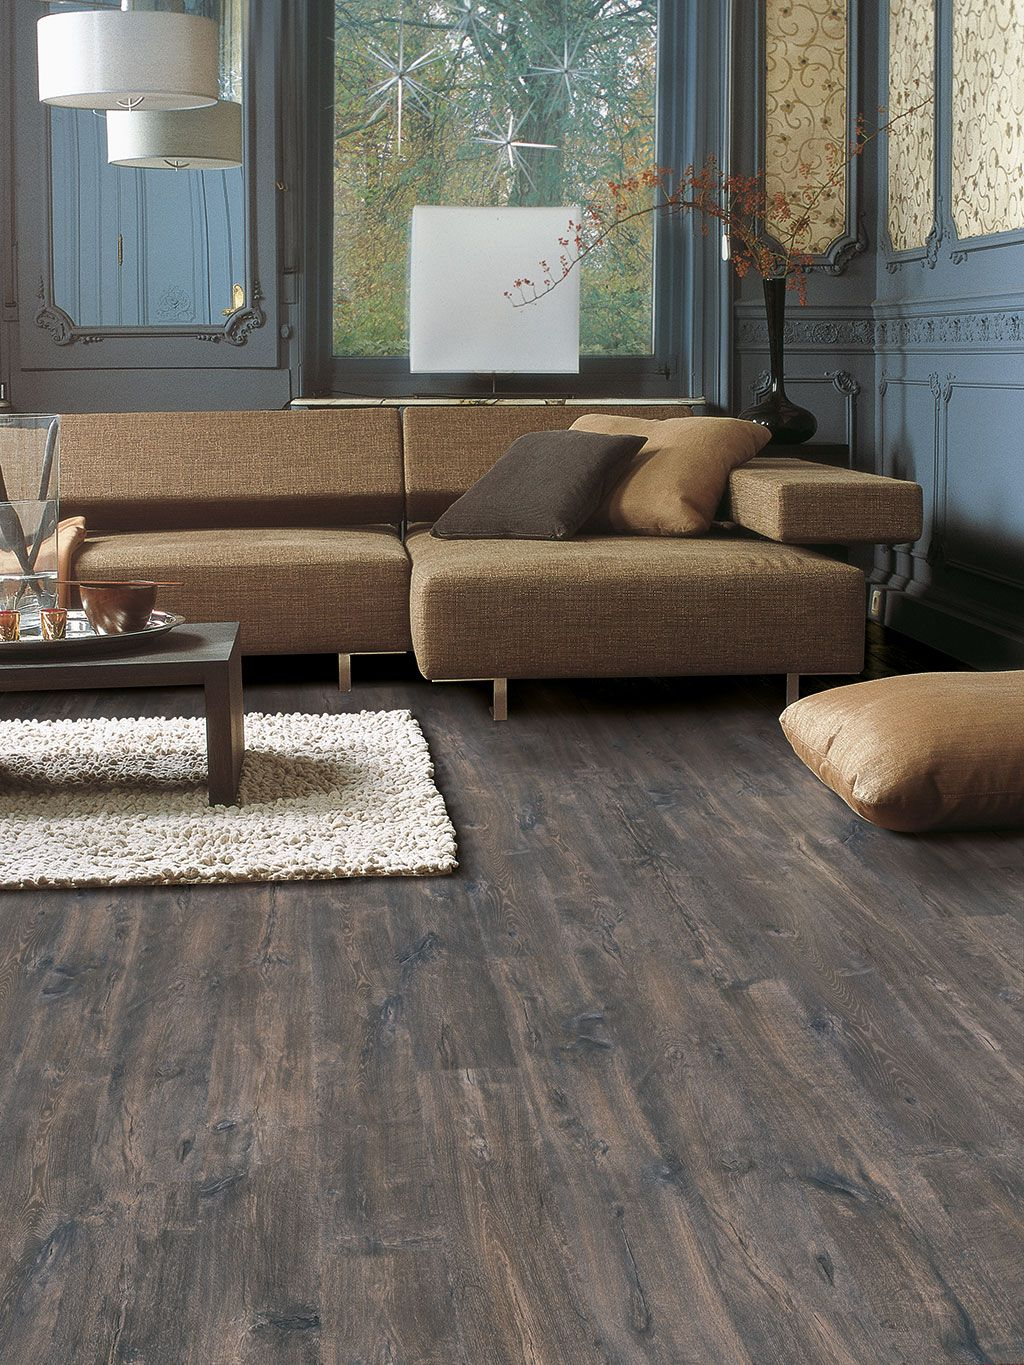 Quick-Step Eligna Wide Caribbean oak dark, planks (UW1546) Laminate  flooring www.quick-step.com